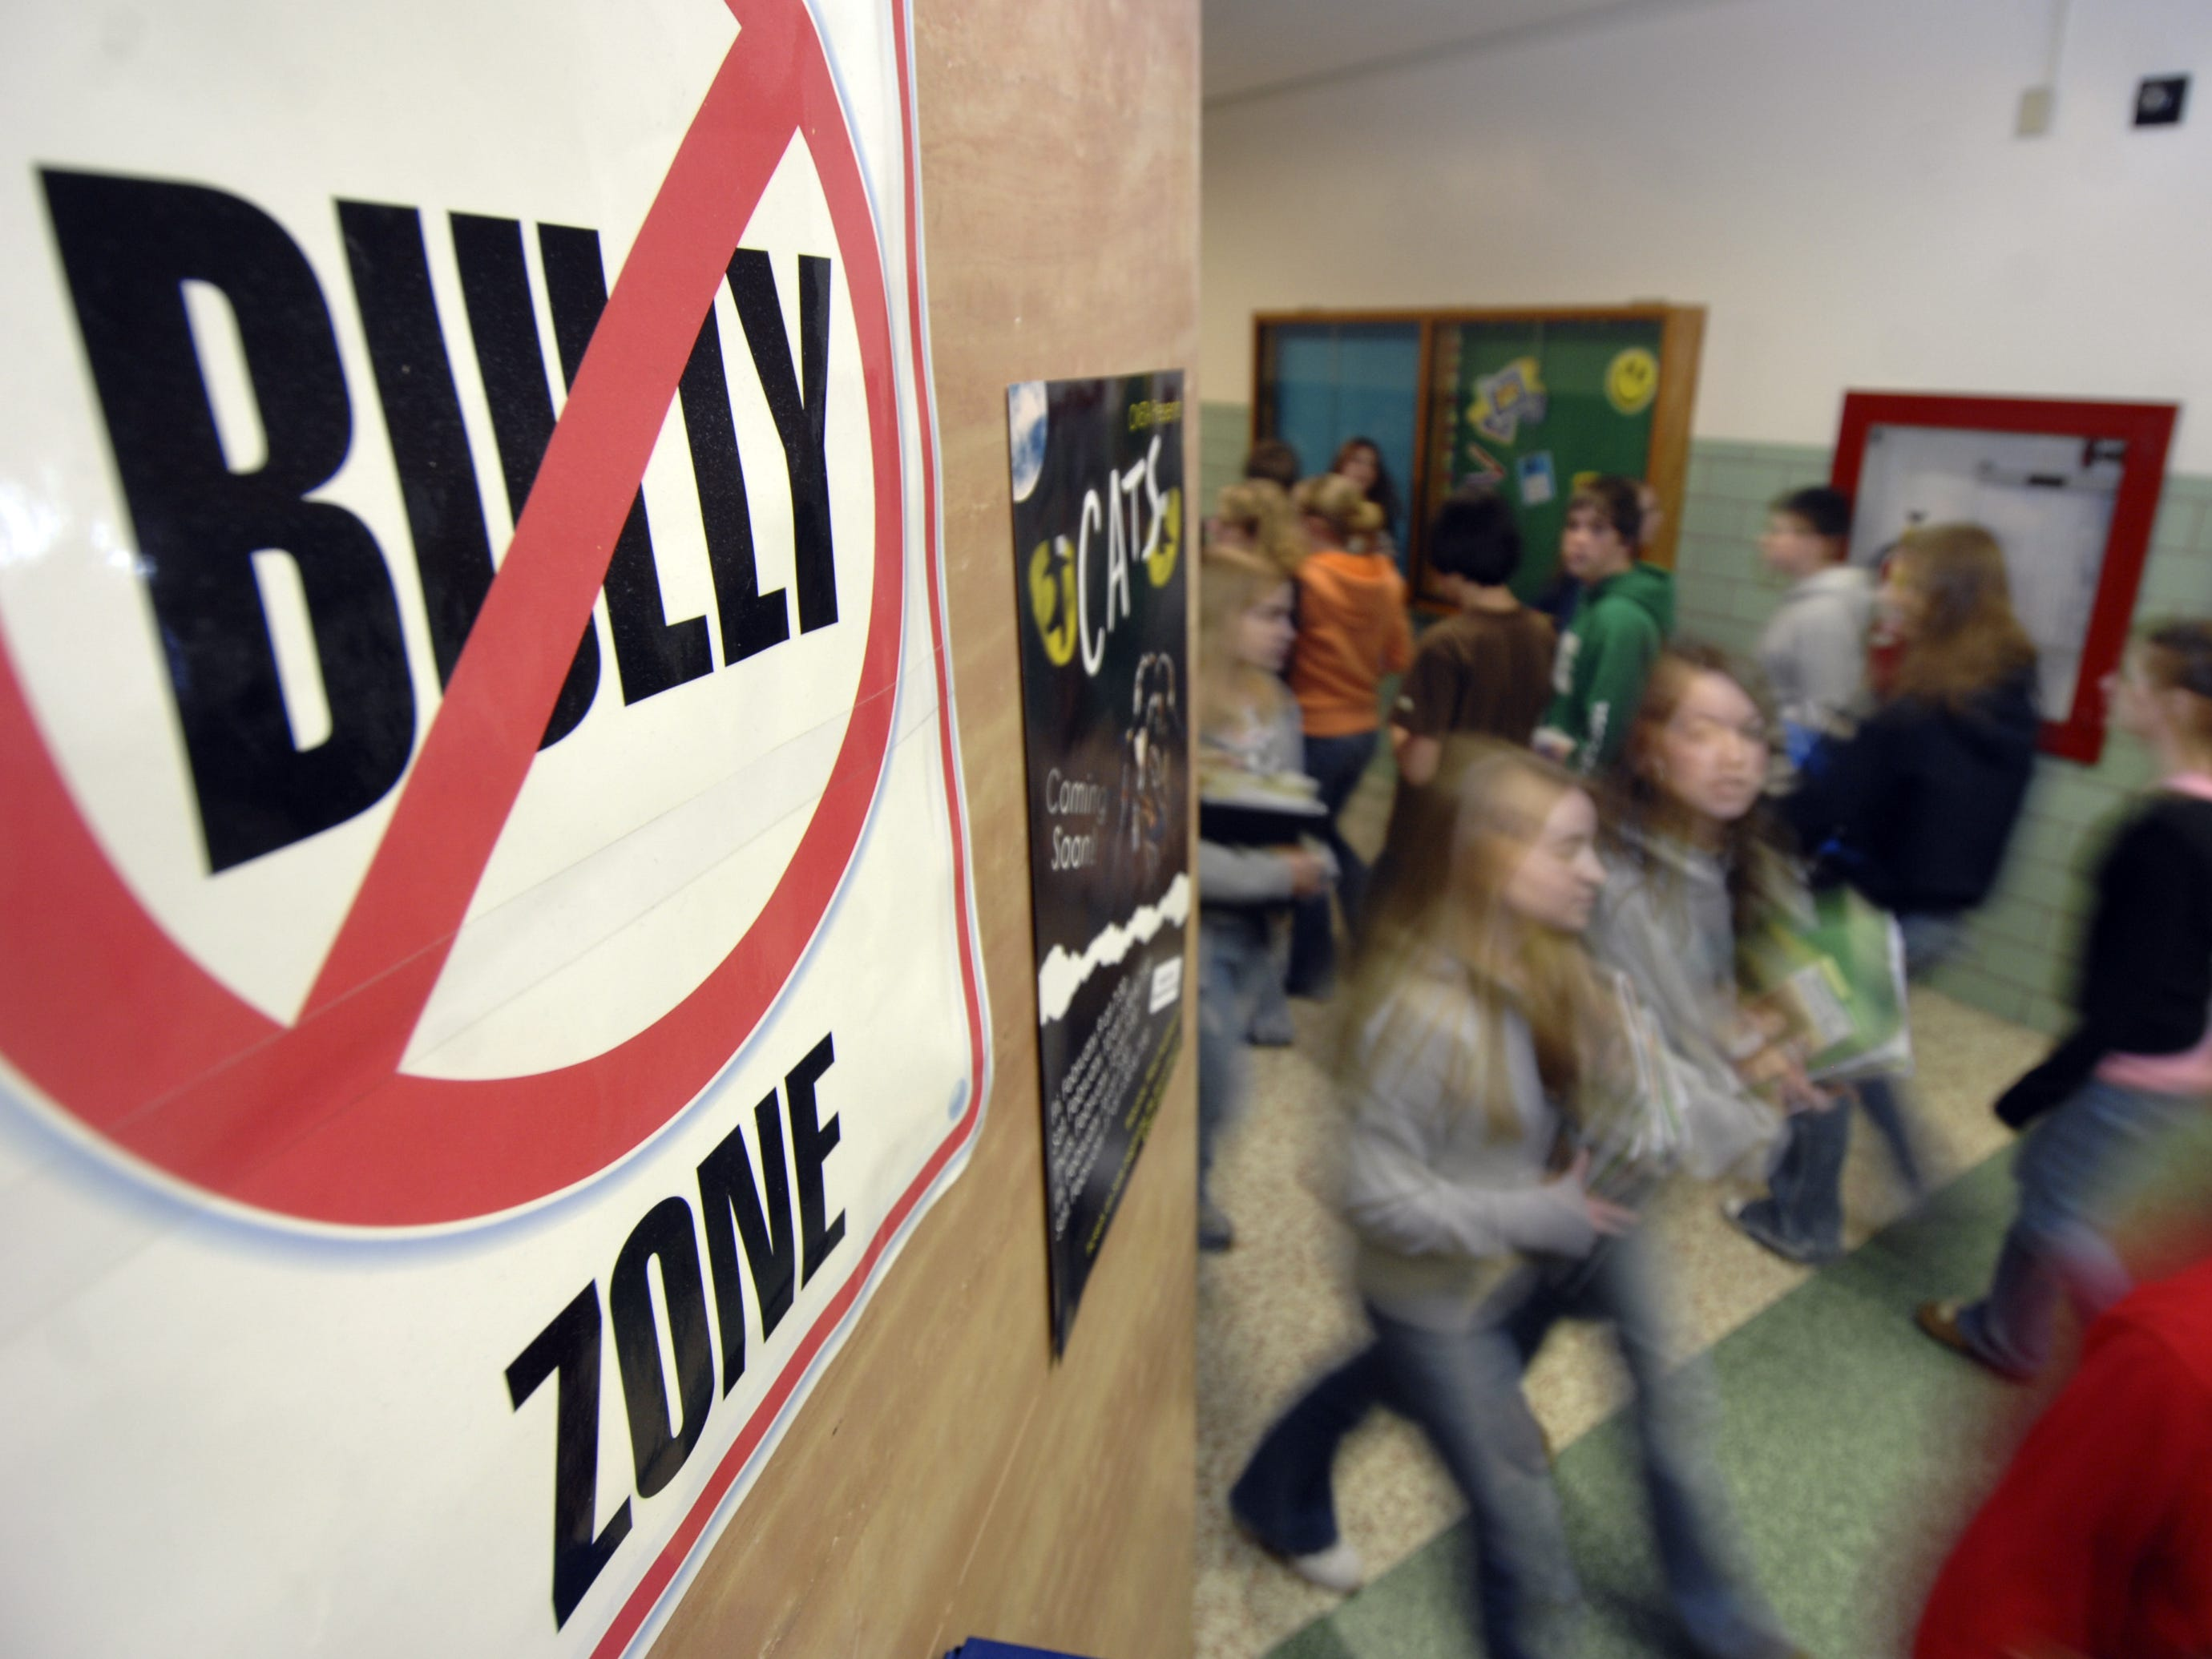 Kids told a Wisconsin Rapids girl to 'go kill yourself.' Why do bullies use such harsh words?